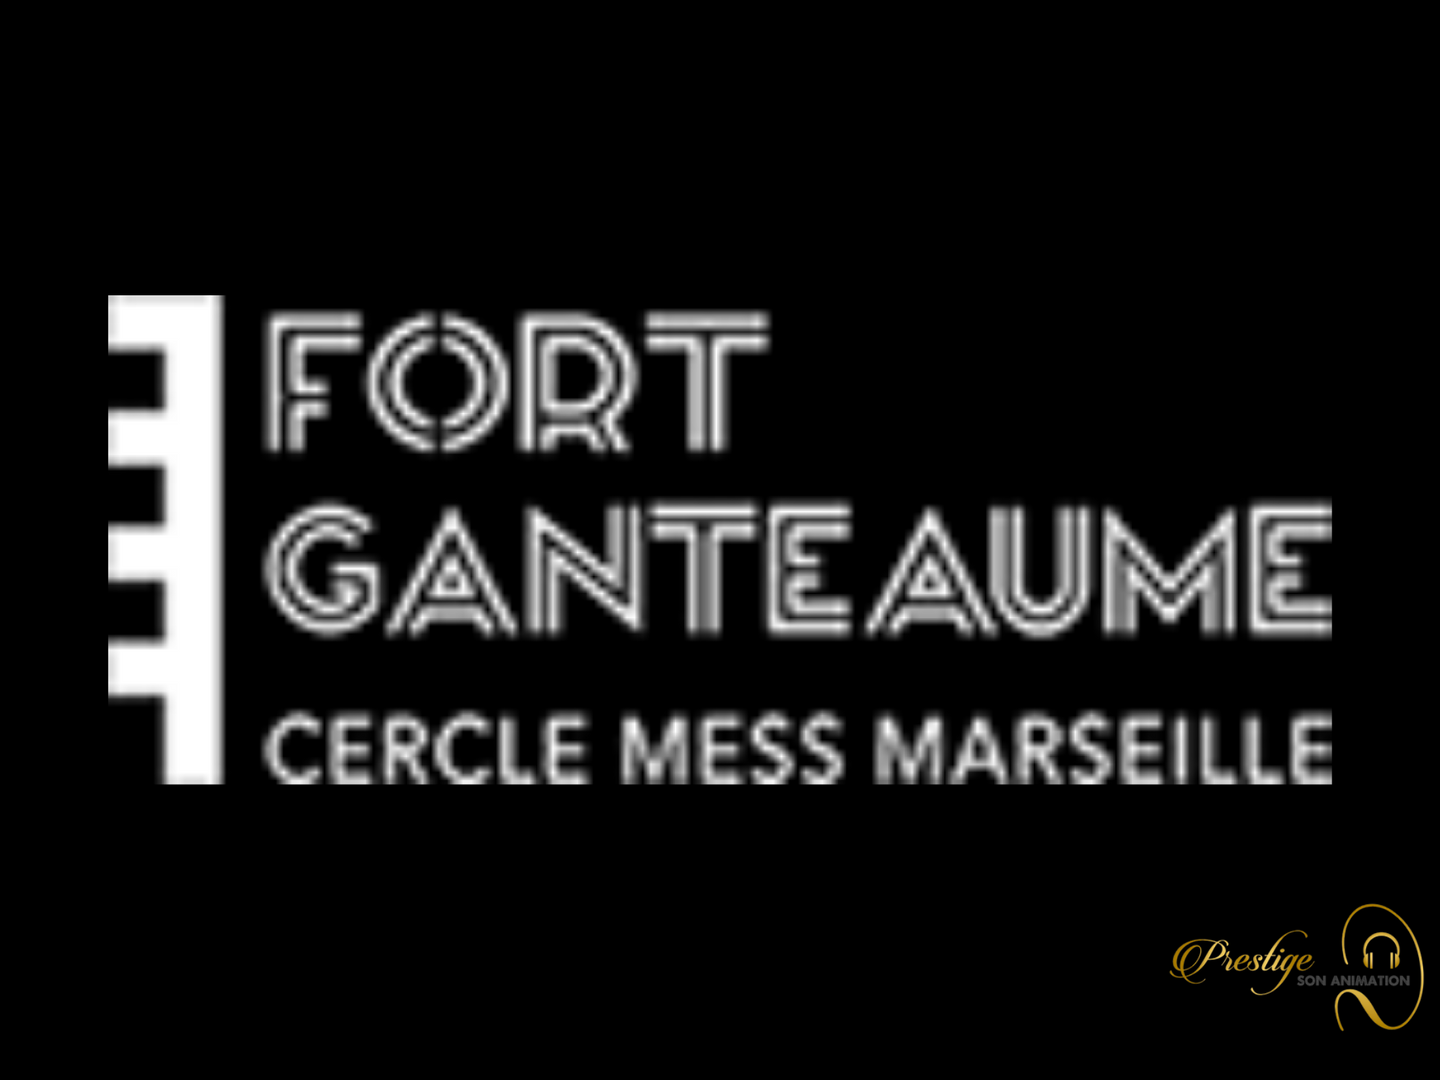 Fort ganteaume